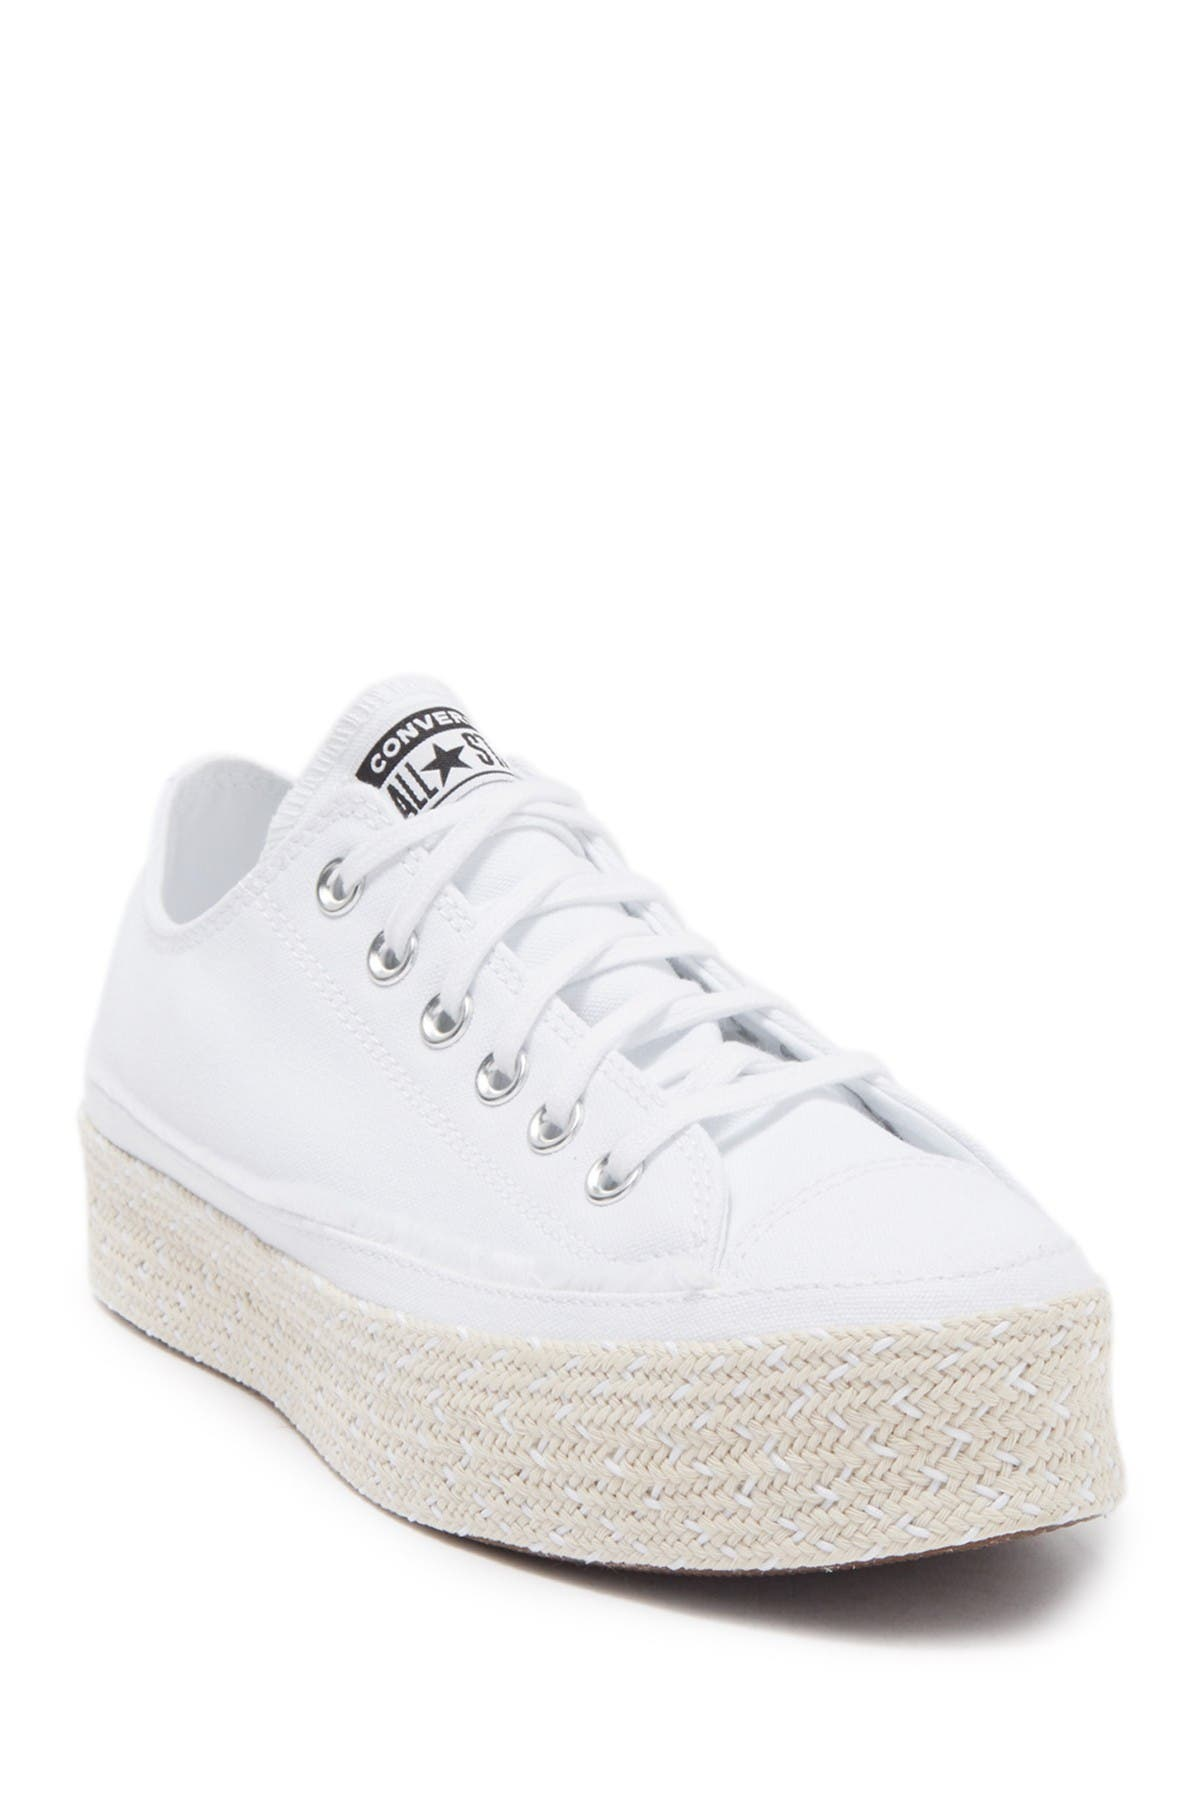 Image of Converse Espadrille Oxford Sneaker